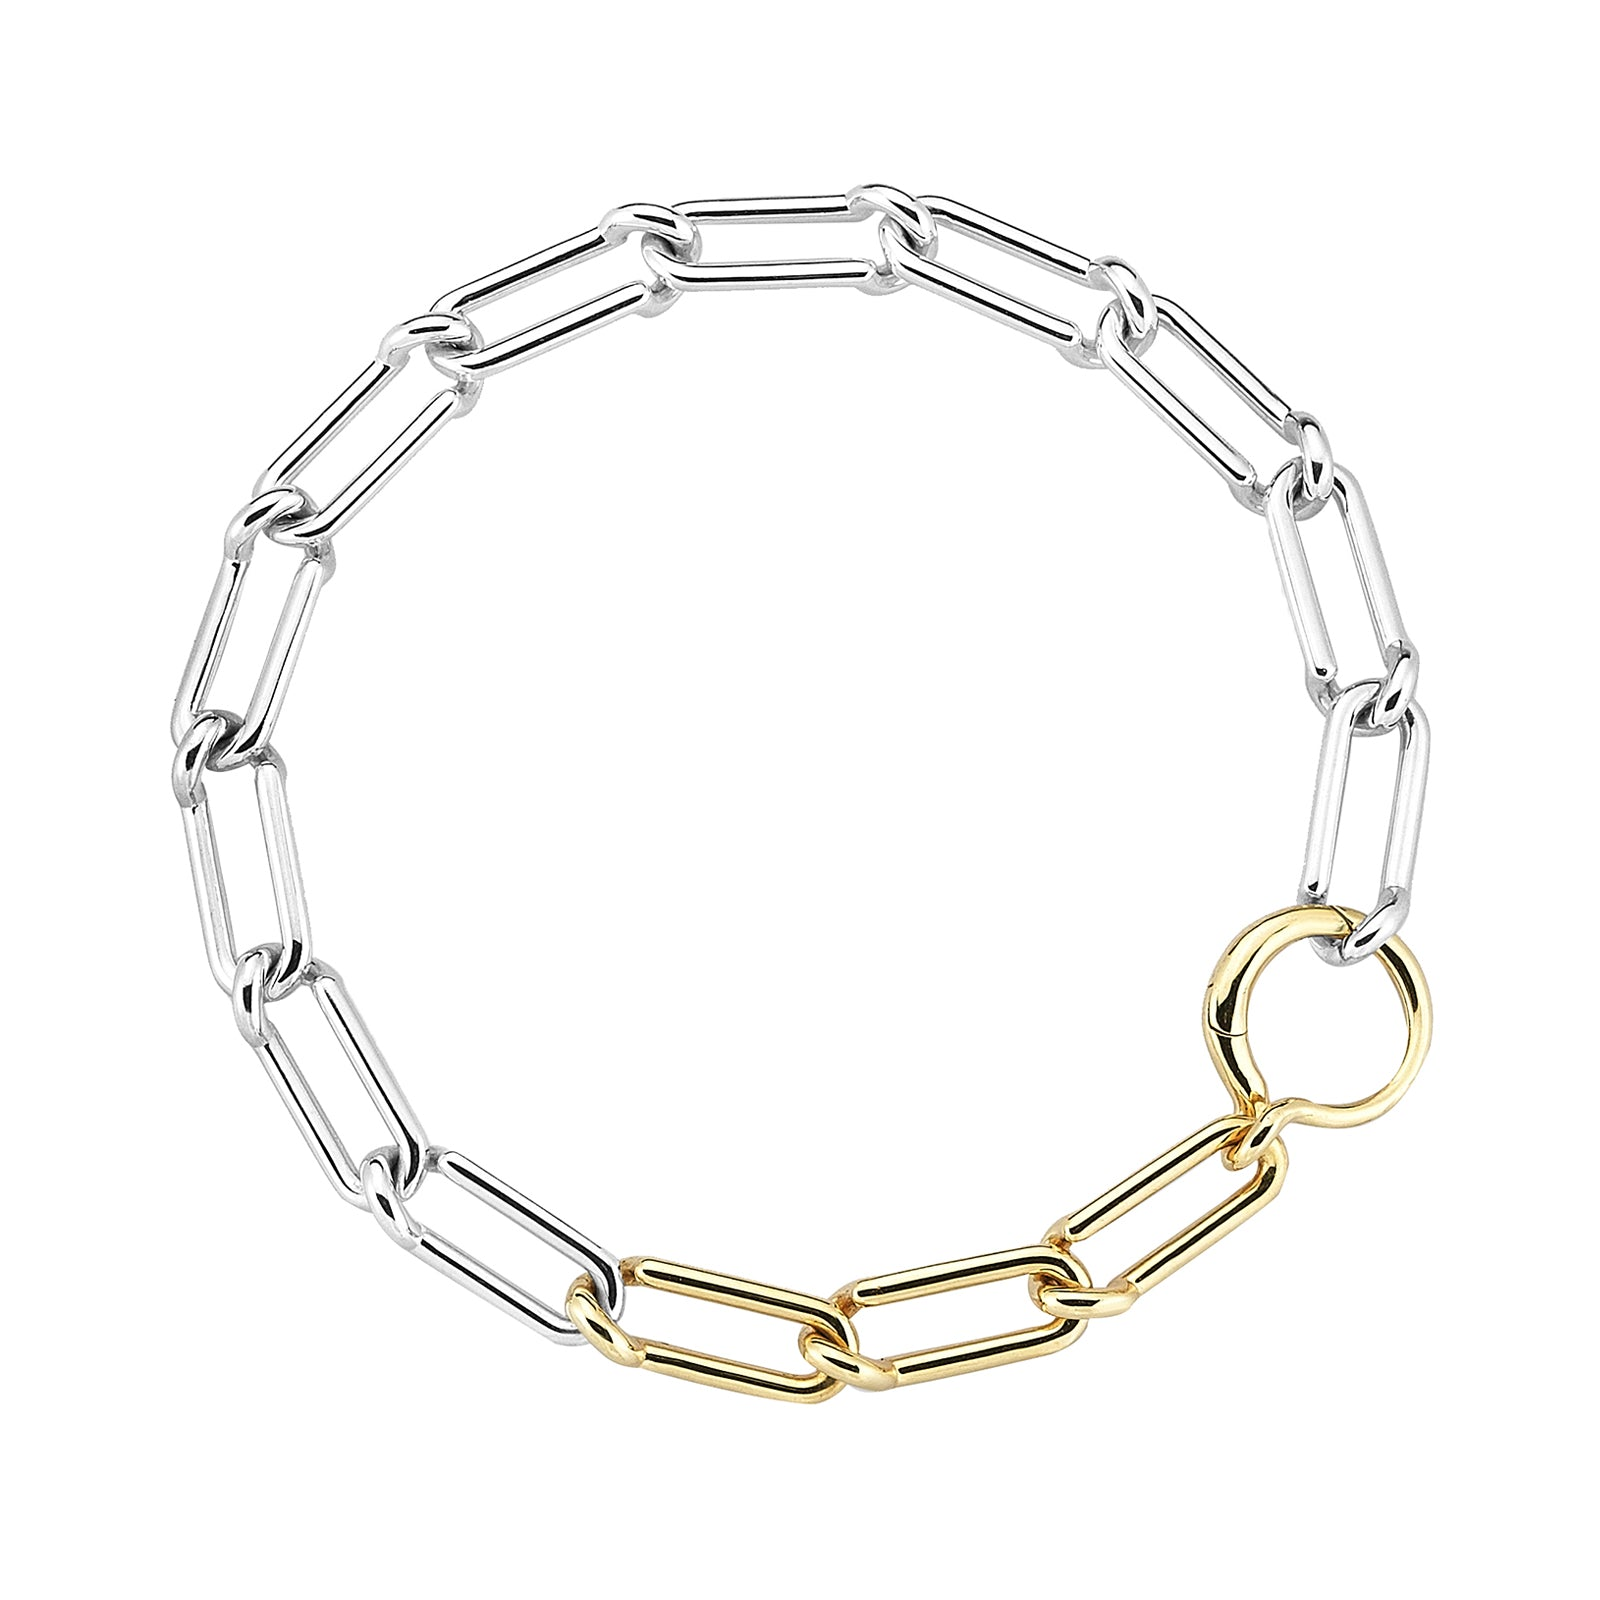 Kloto Duo Merge Bracelet - Bracelets - Broken English Jewelry